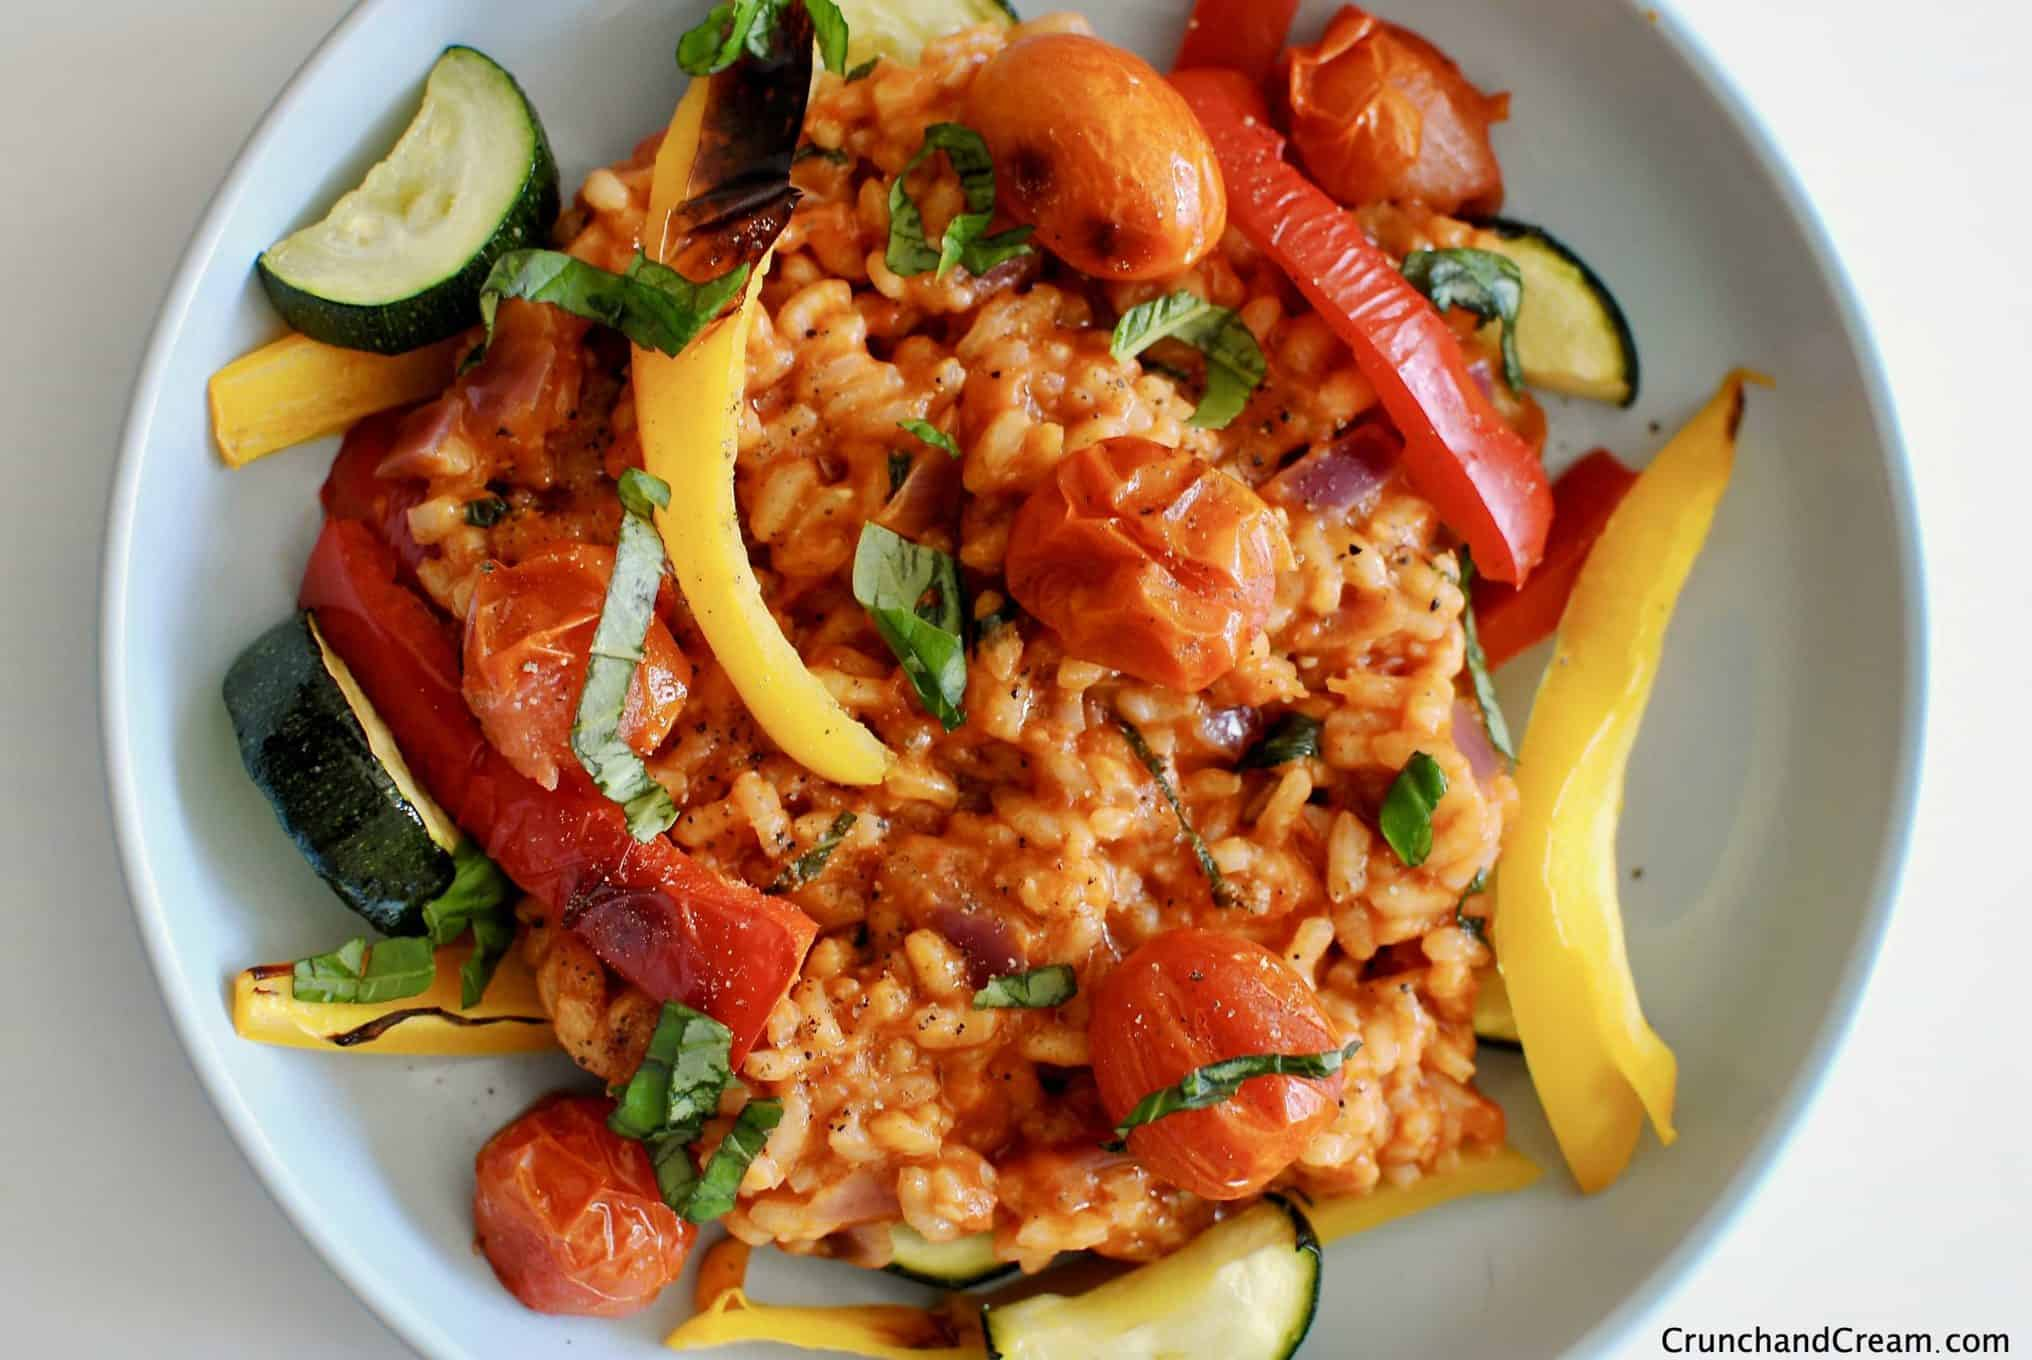 A rich and creamy risotto made with crushed tomatoes, served with chargrilled peppers, tomatoes and courgette to form a comforting and hearty vegetarian dinner.